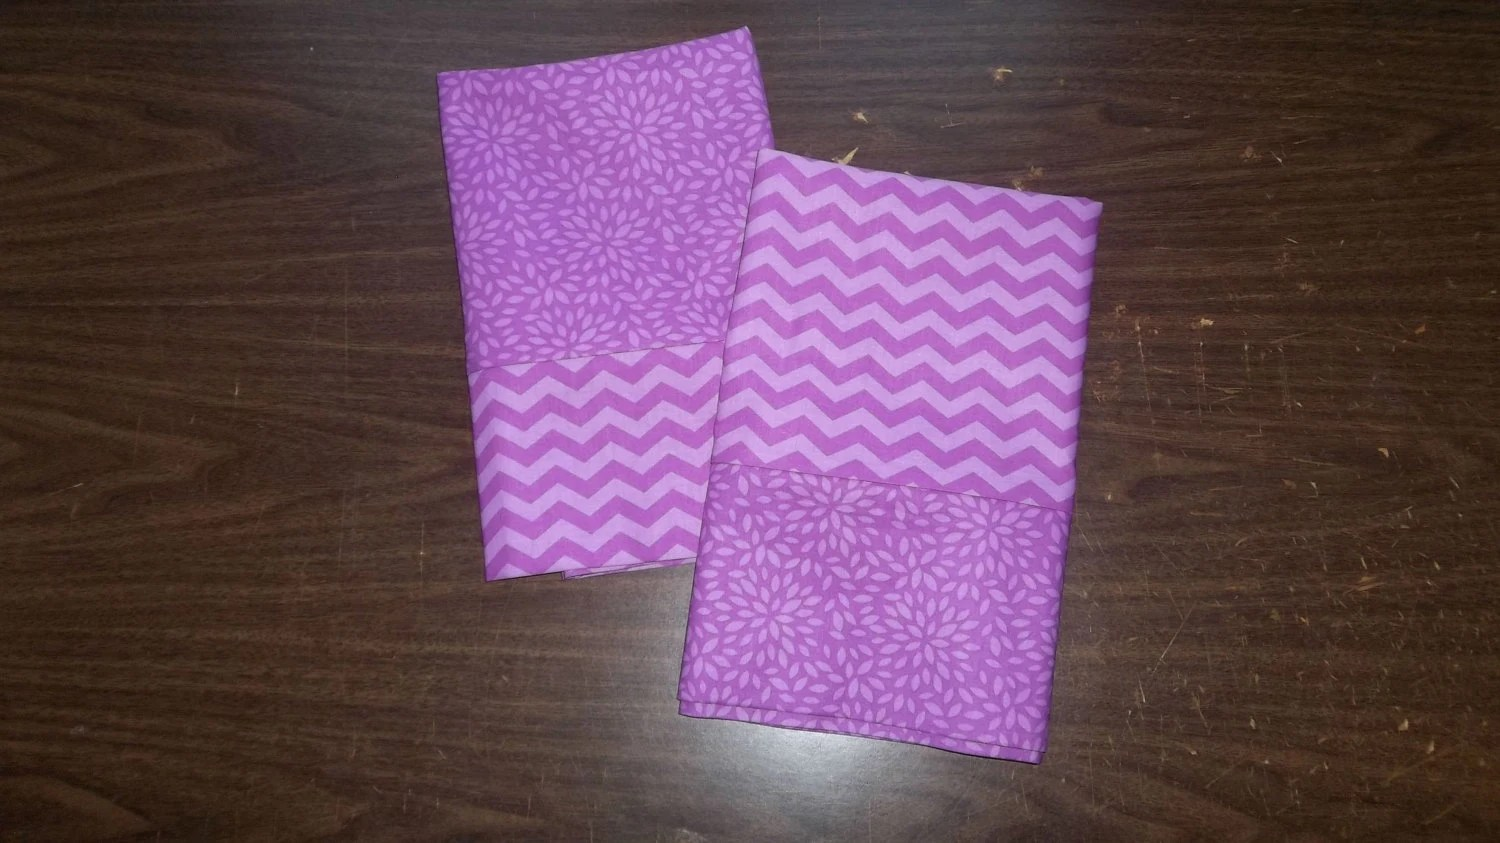 Set Of 2 Pillow Cases In Coordinating Lavender/Purple Colors